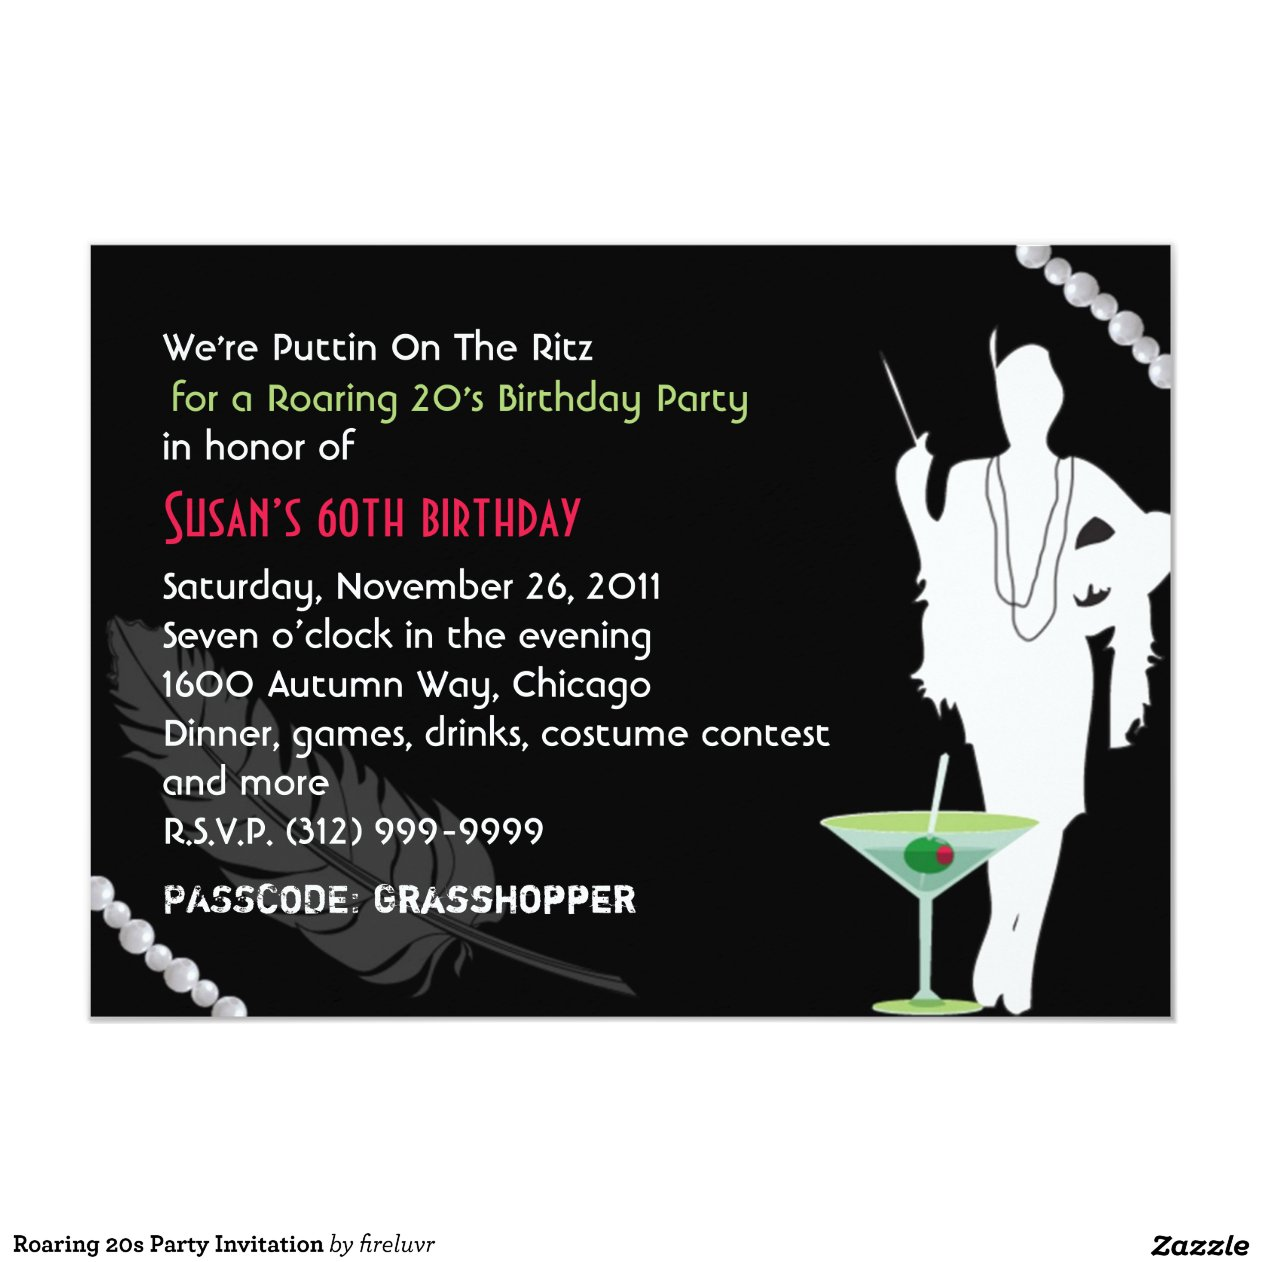 Party Invitation Card Design